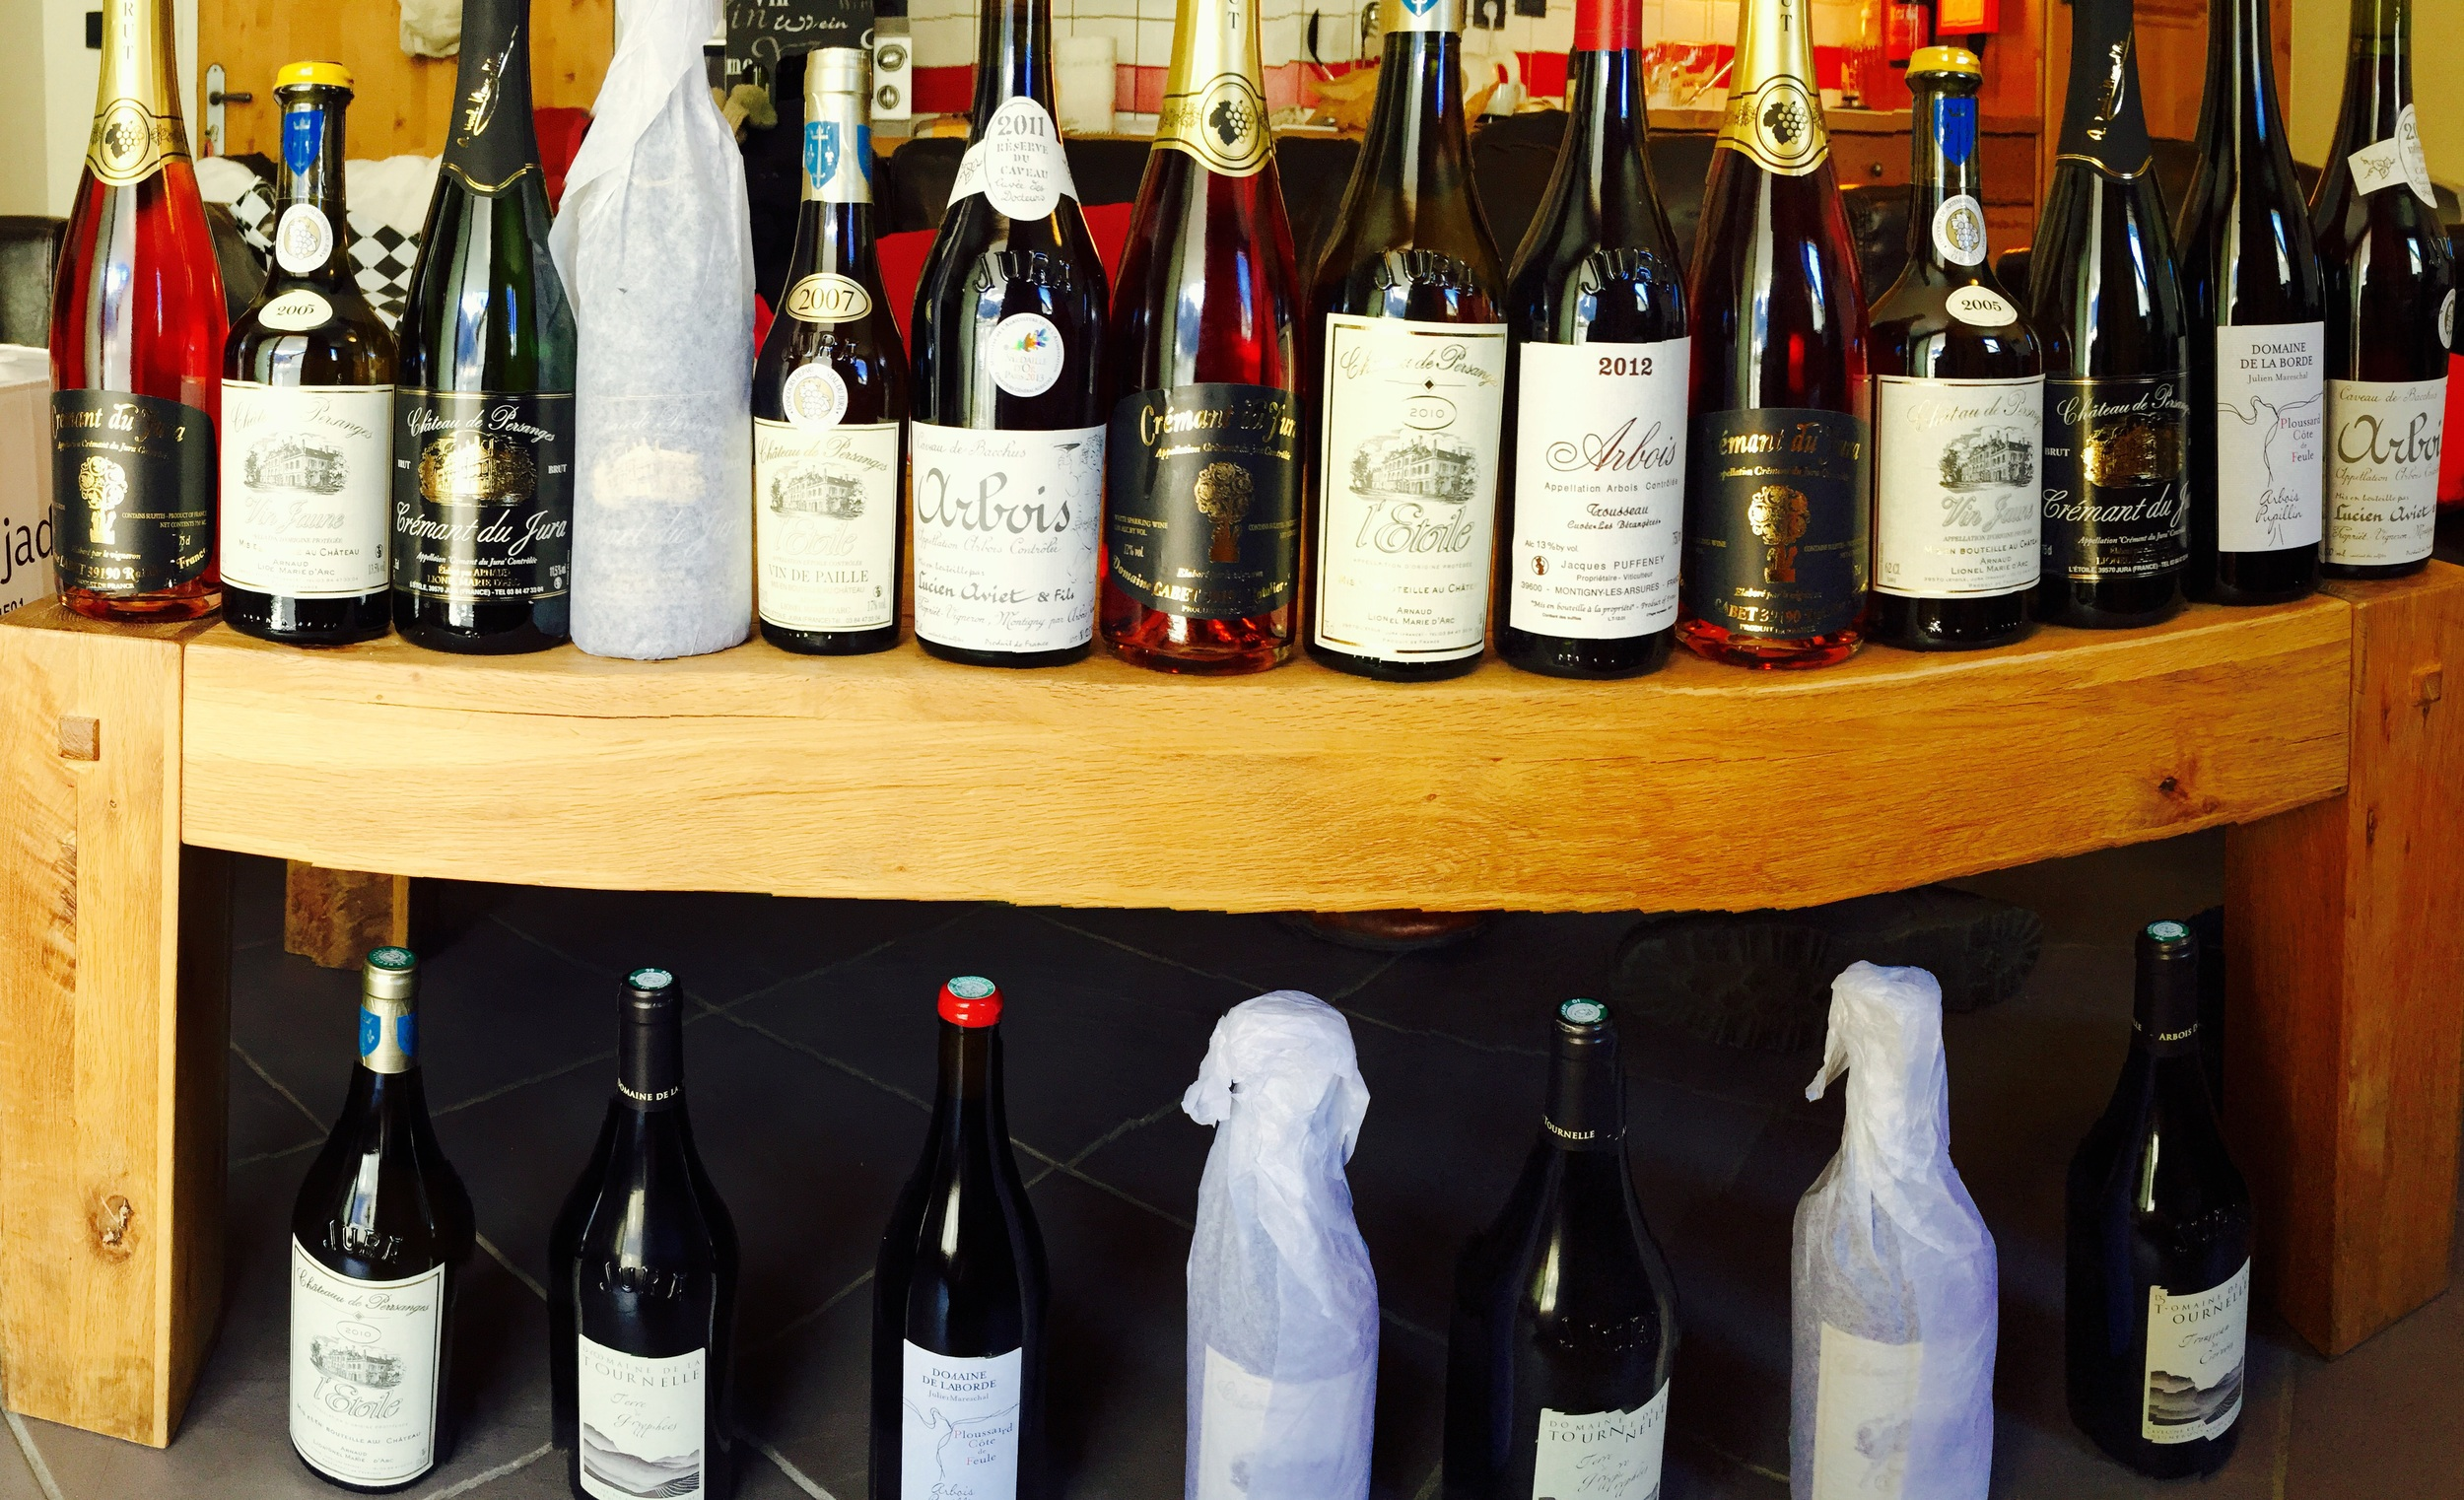 The selection of wines we are bringing back to share with you all at our next few farm dinners! We can't wait!